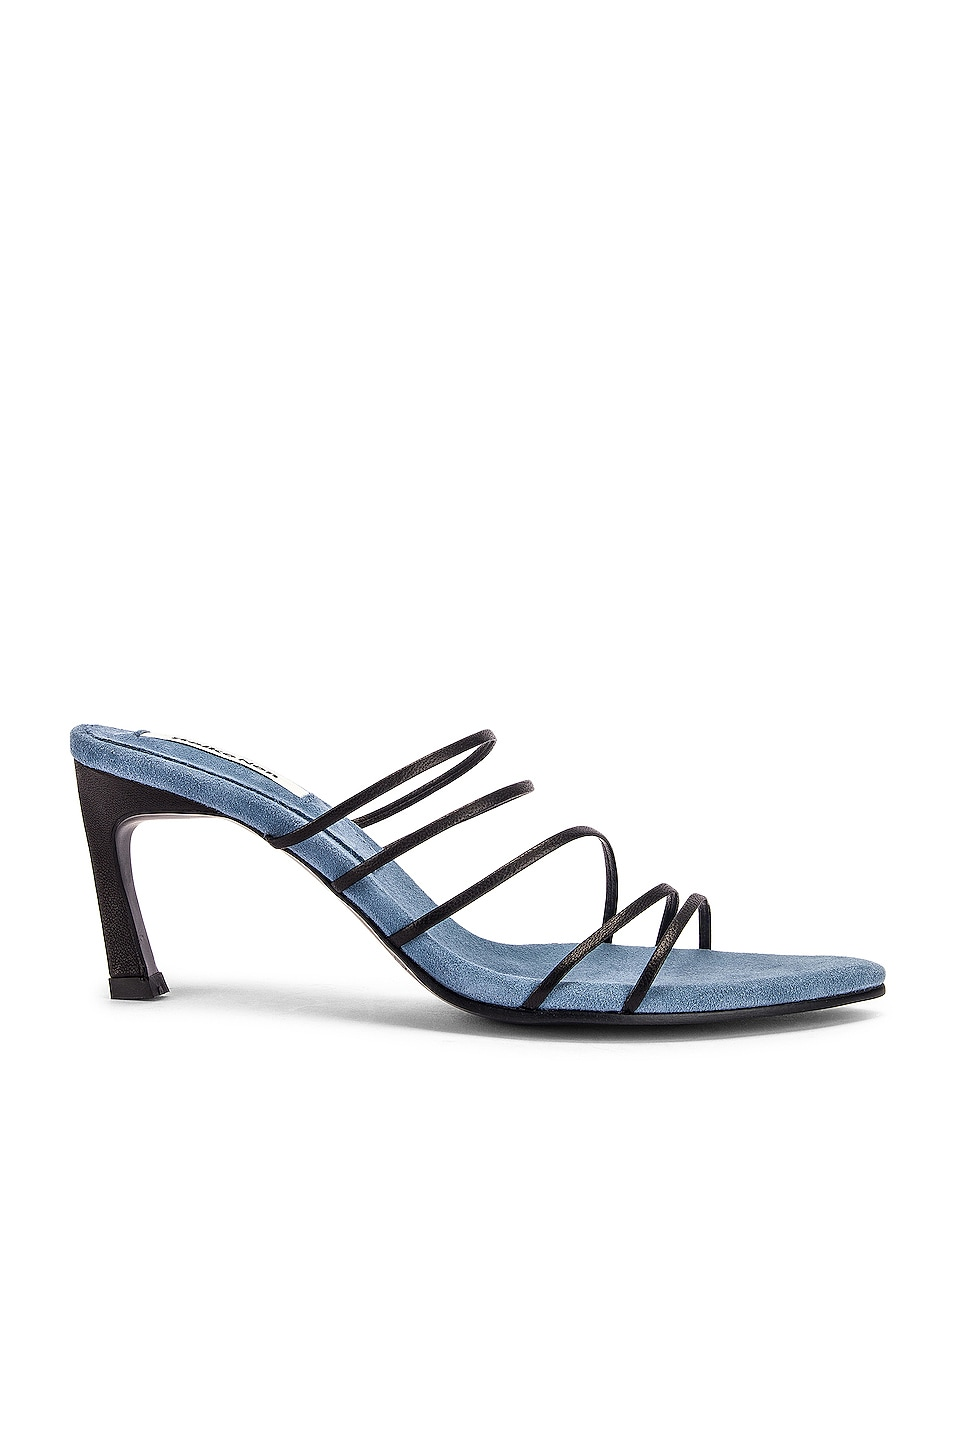 Image 1 of Reike Nen Strings Pointed Heels in Black & Water Blue